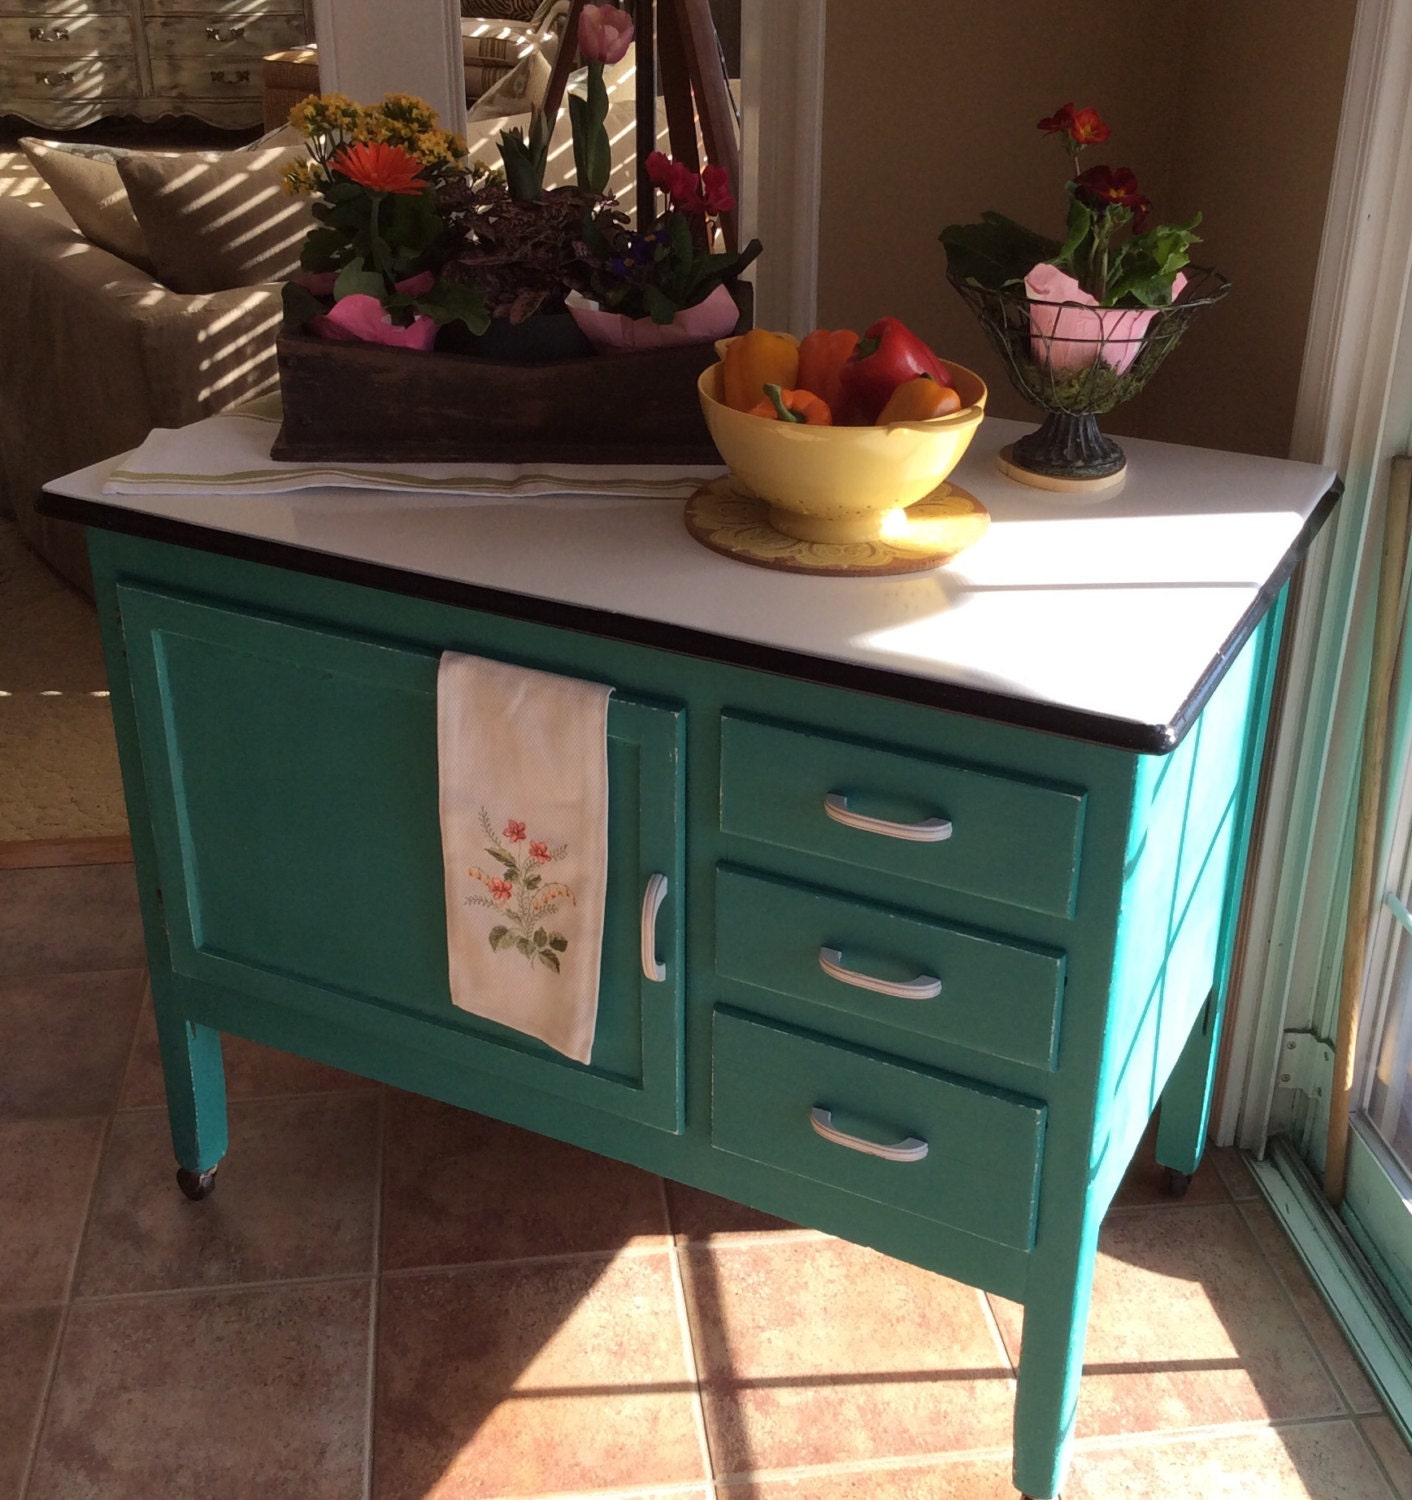 Sold hoosier cabinet by relovedbylori on etsy for Kitchen cabinets 08054